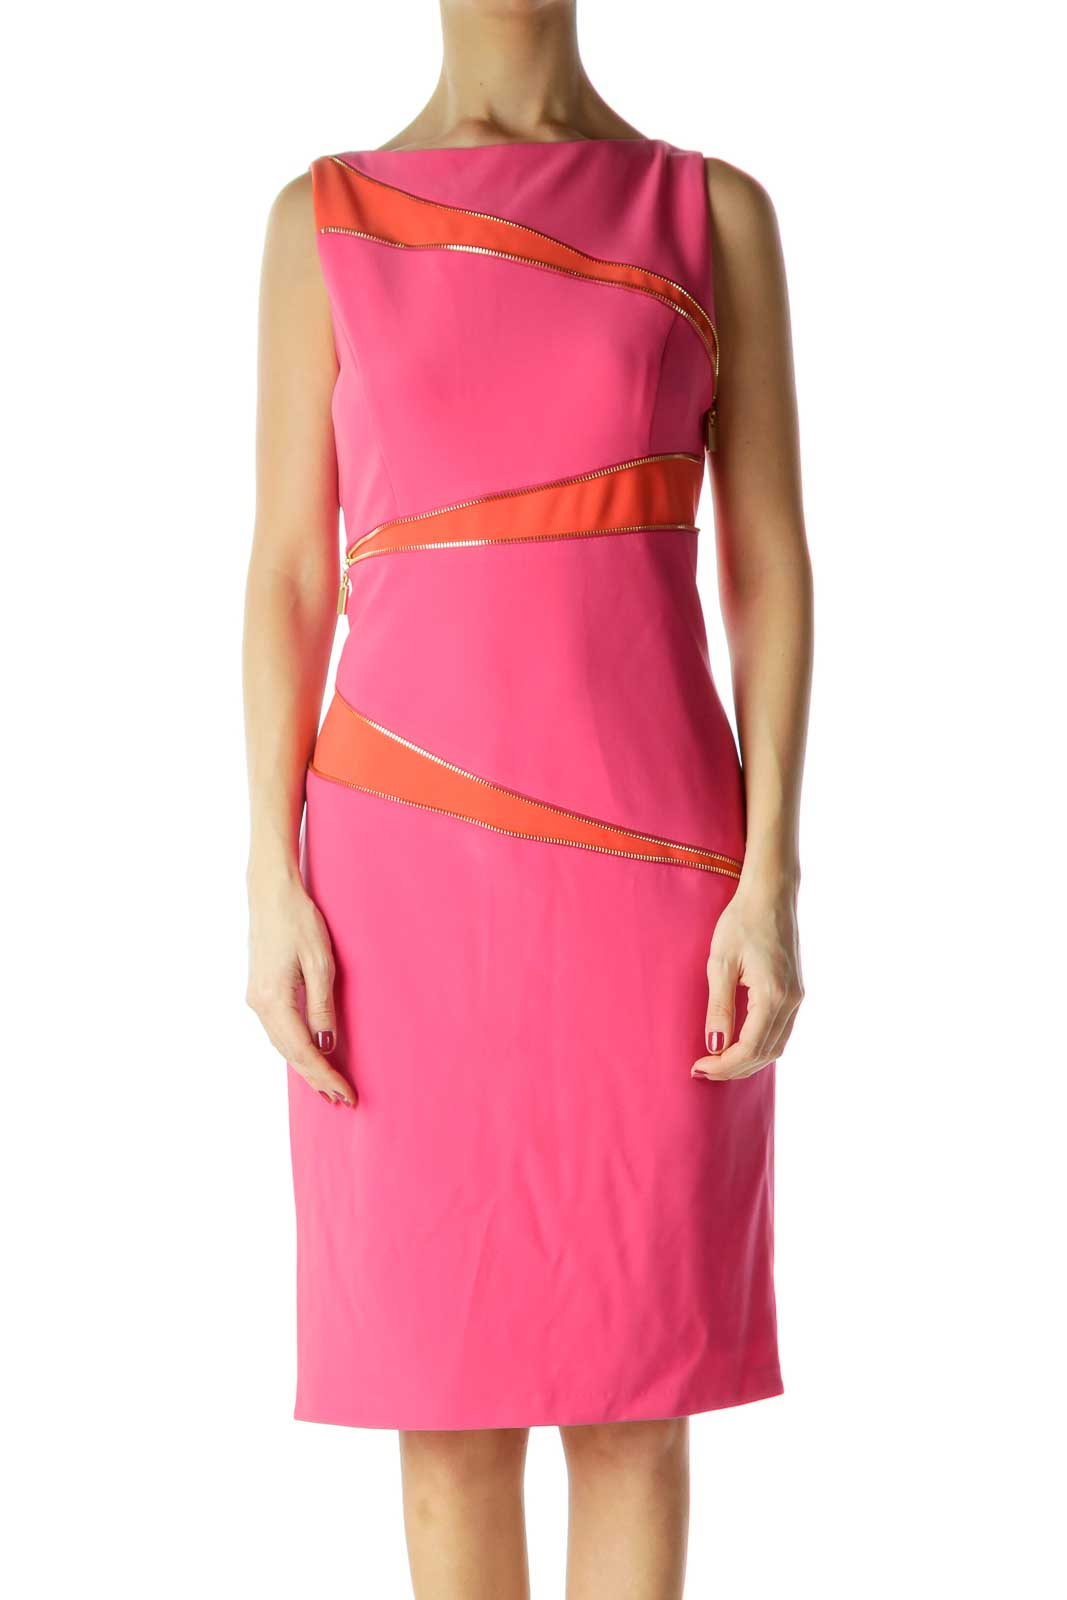 Pink Orange Work Dress with Diagonal Zippers Front